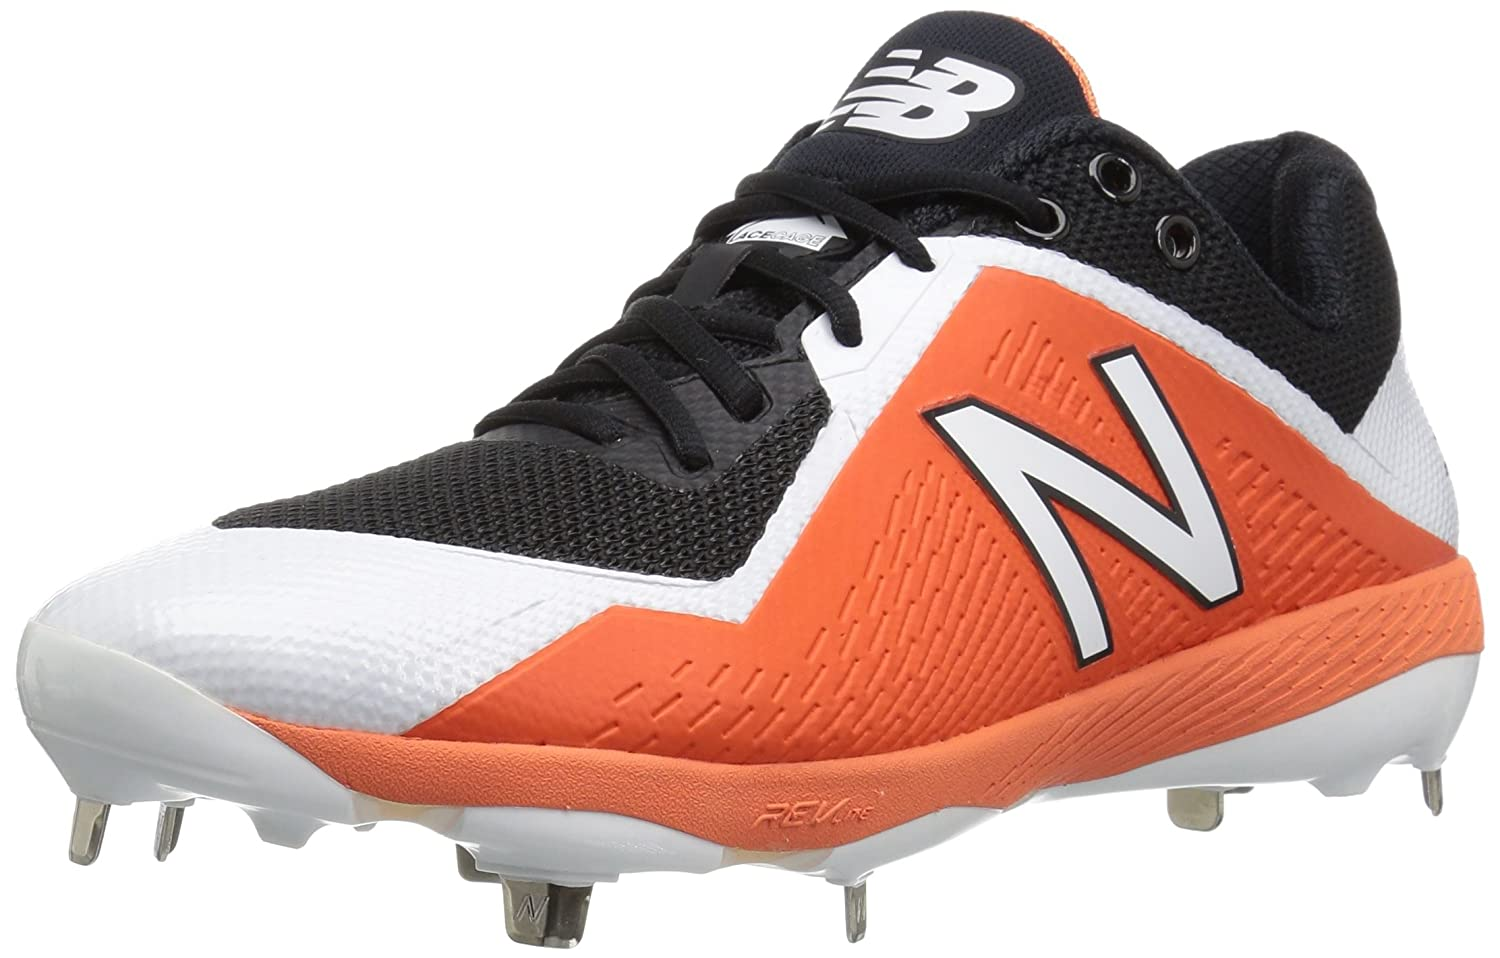 New Balance Men's L4040v4 Metal Baseball schuhe, schwarz Orange, 12 D US